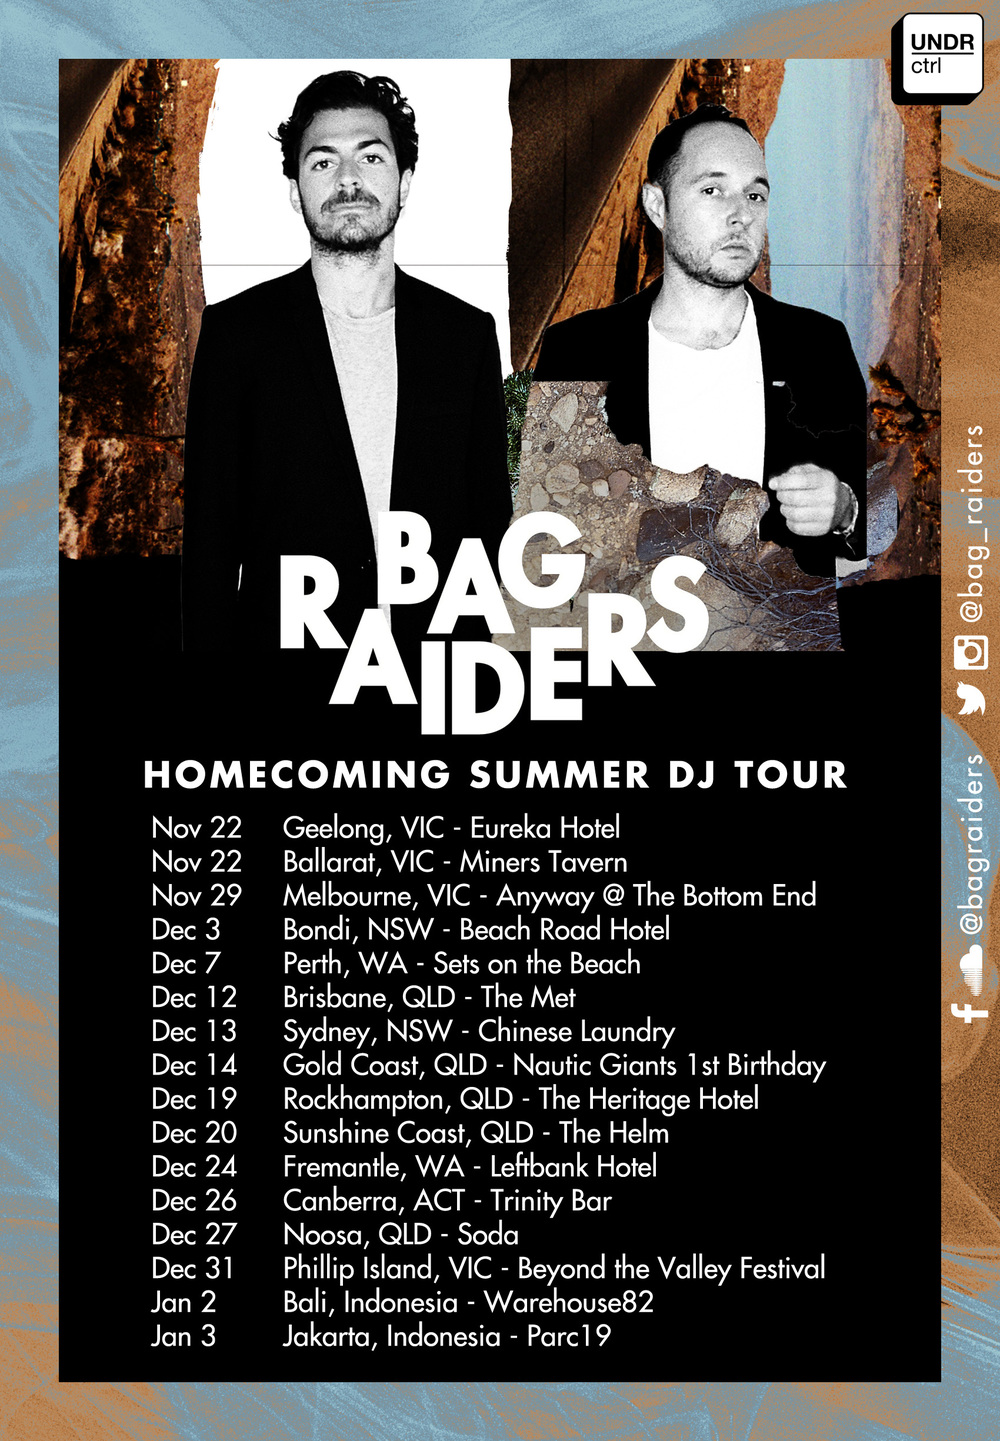 Bag-Raiders-Homecoming-Tour.jpg